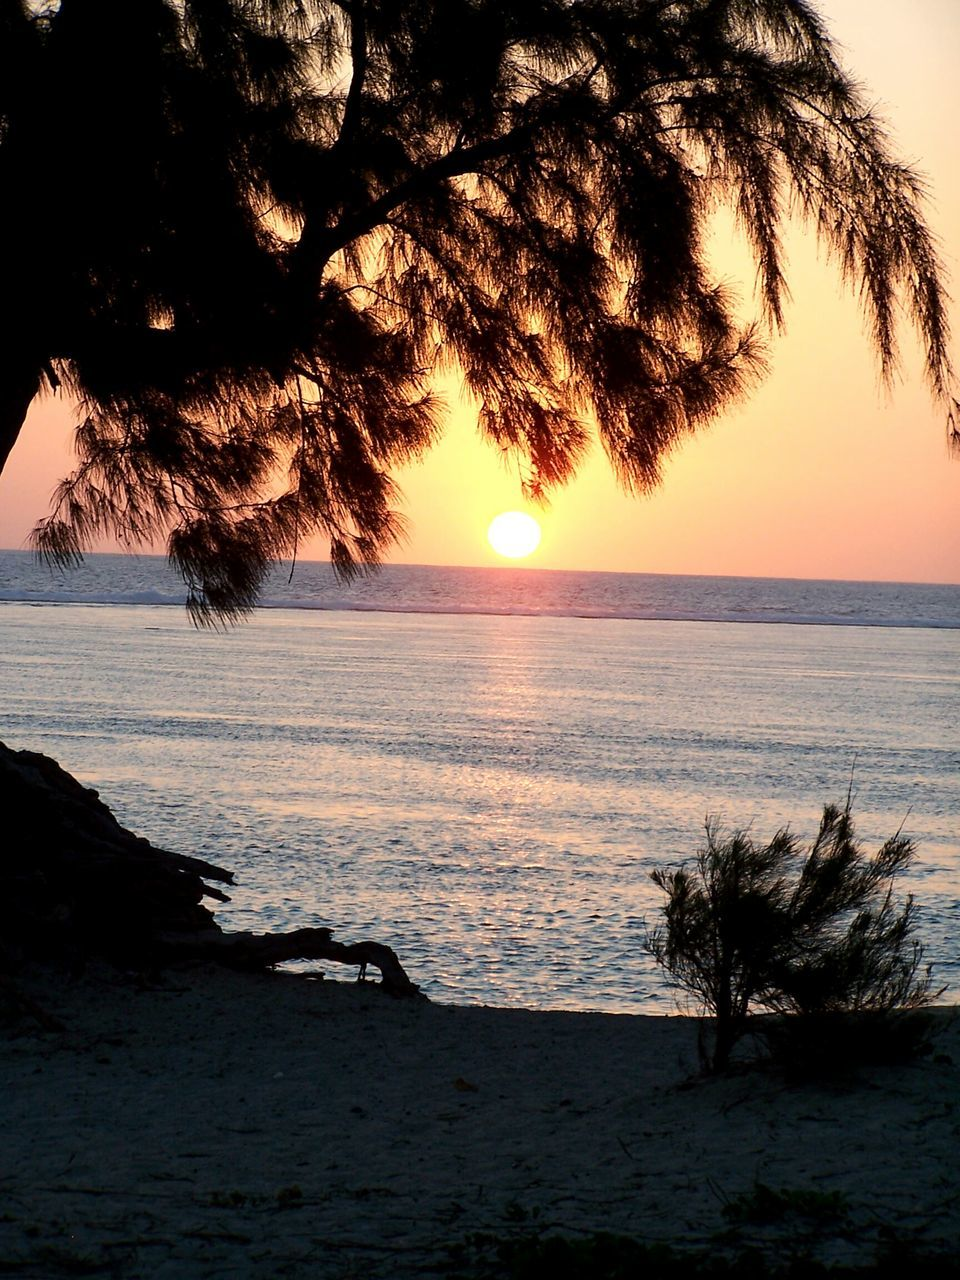 sunset, sun, beauty in nature, sea, nature, scenics, tranquility, tranquil scene, tree, orange color, water, horizon over water, silhouette, beach, sky, idyllic, no people, outdoors, sunlight, sand, day